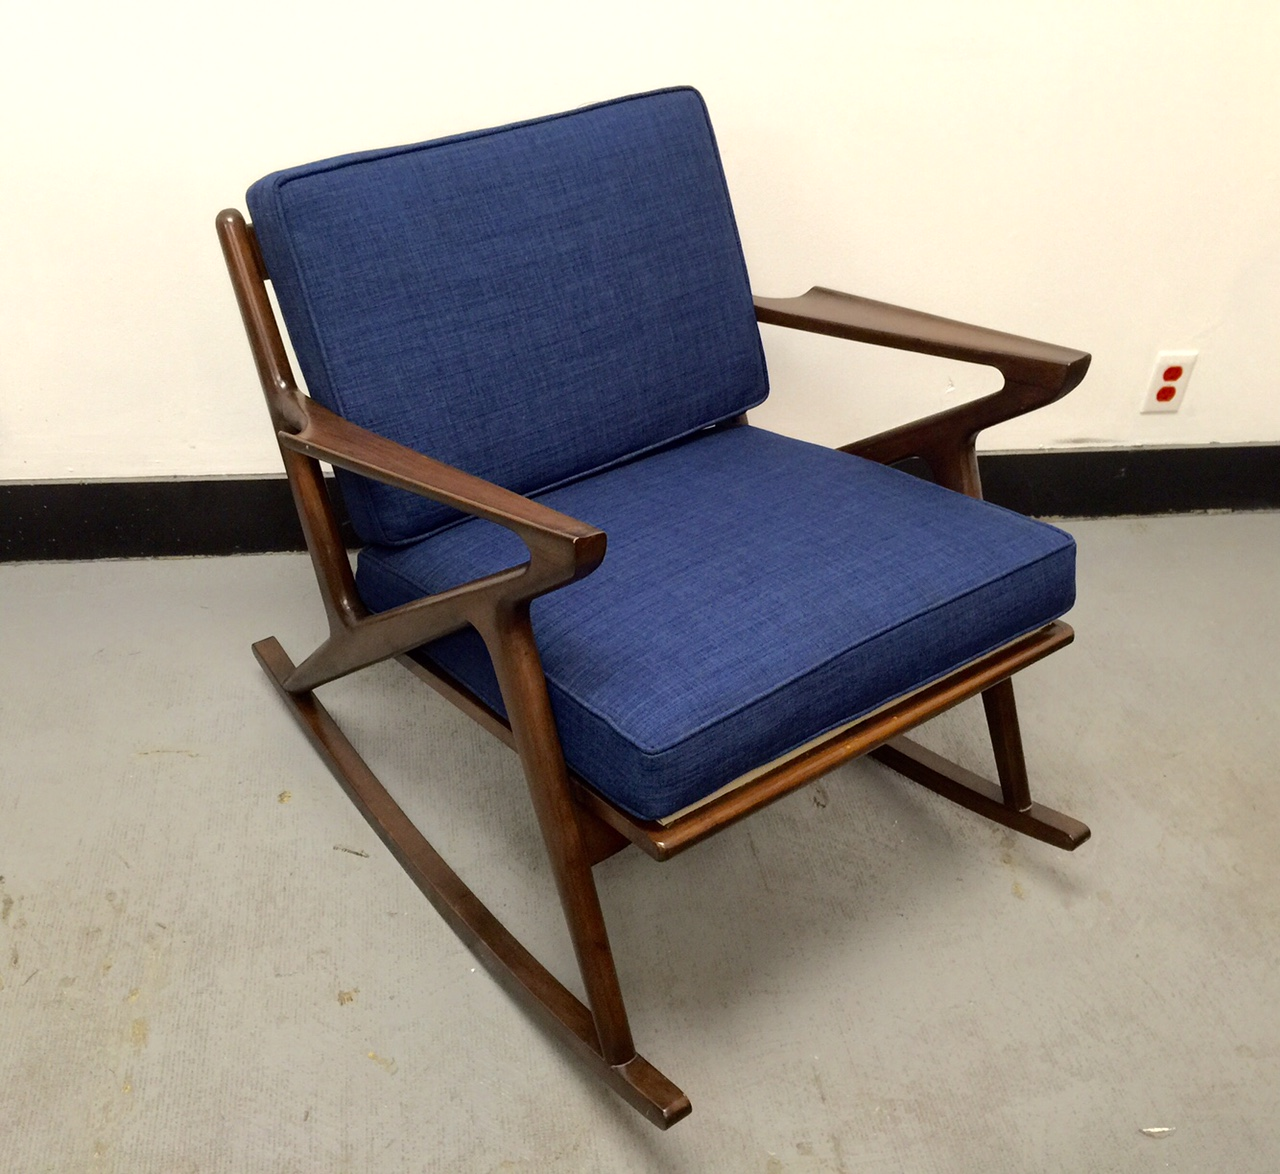 Mid century custom z rocking chair west coast modern la for Z chair mid century